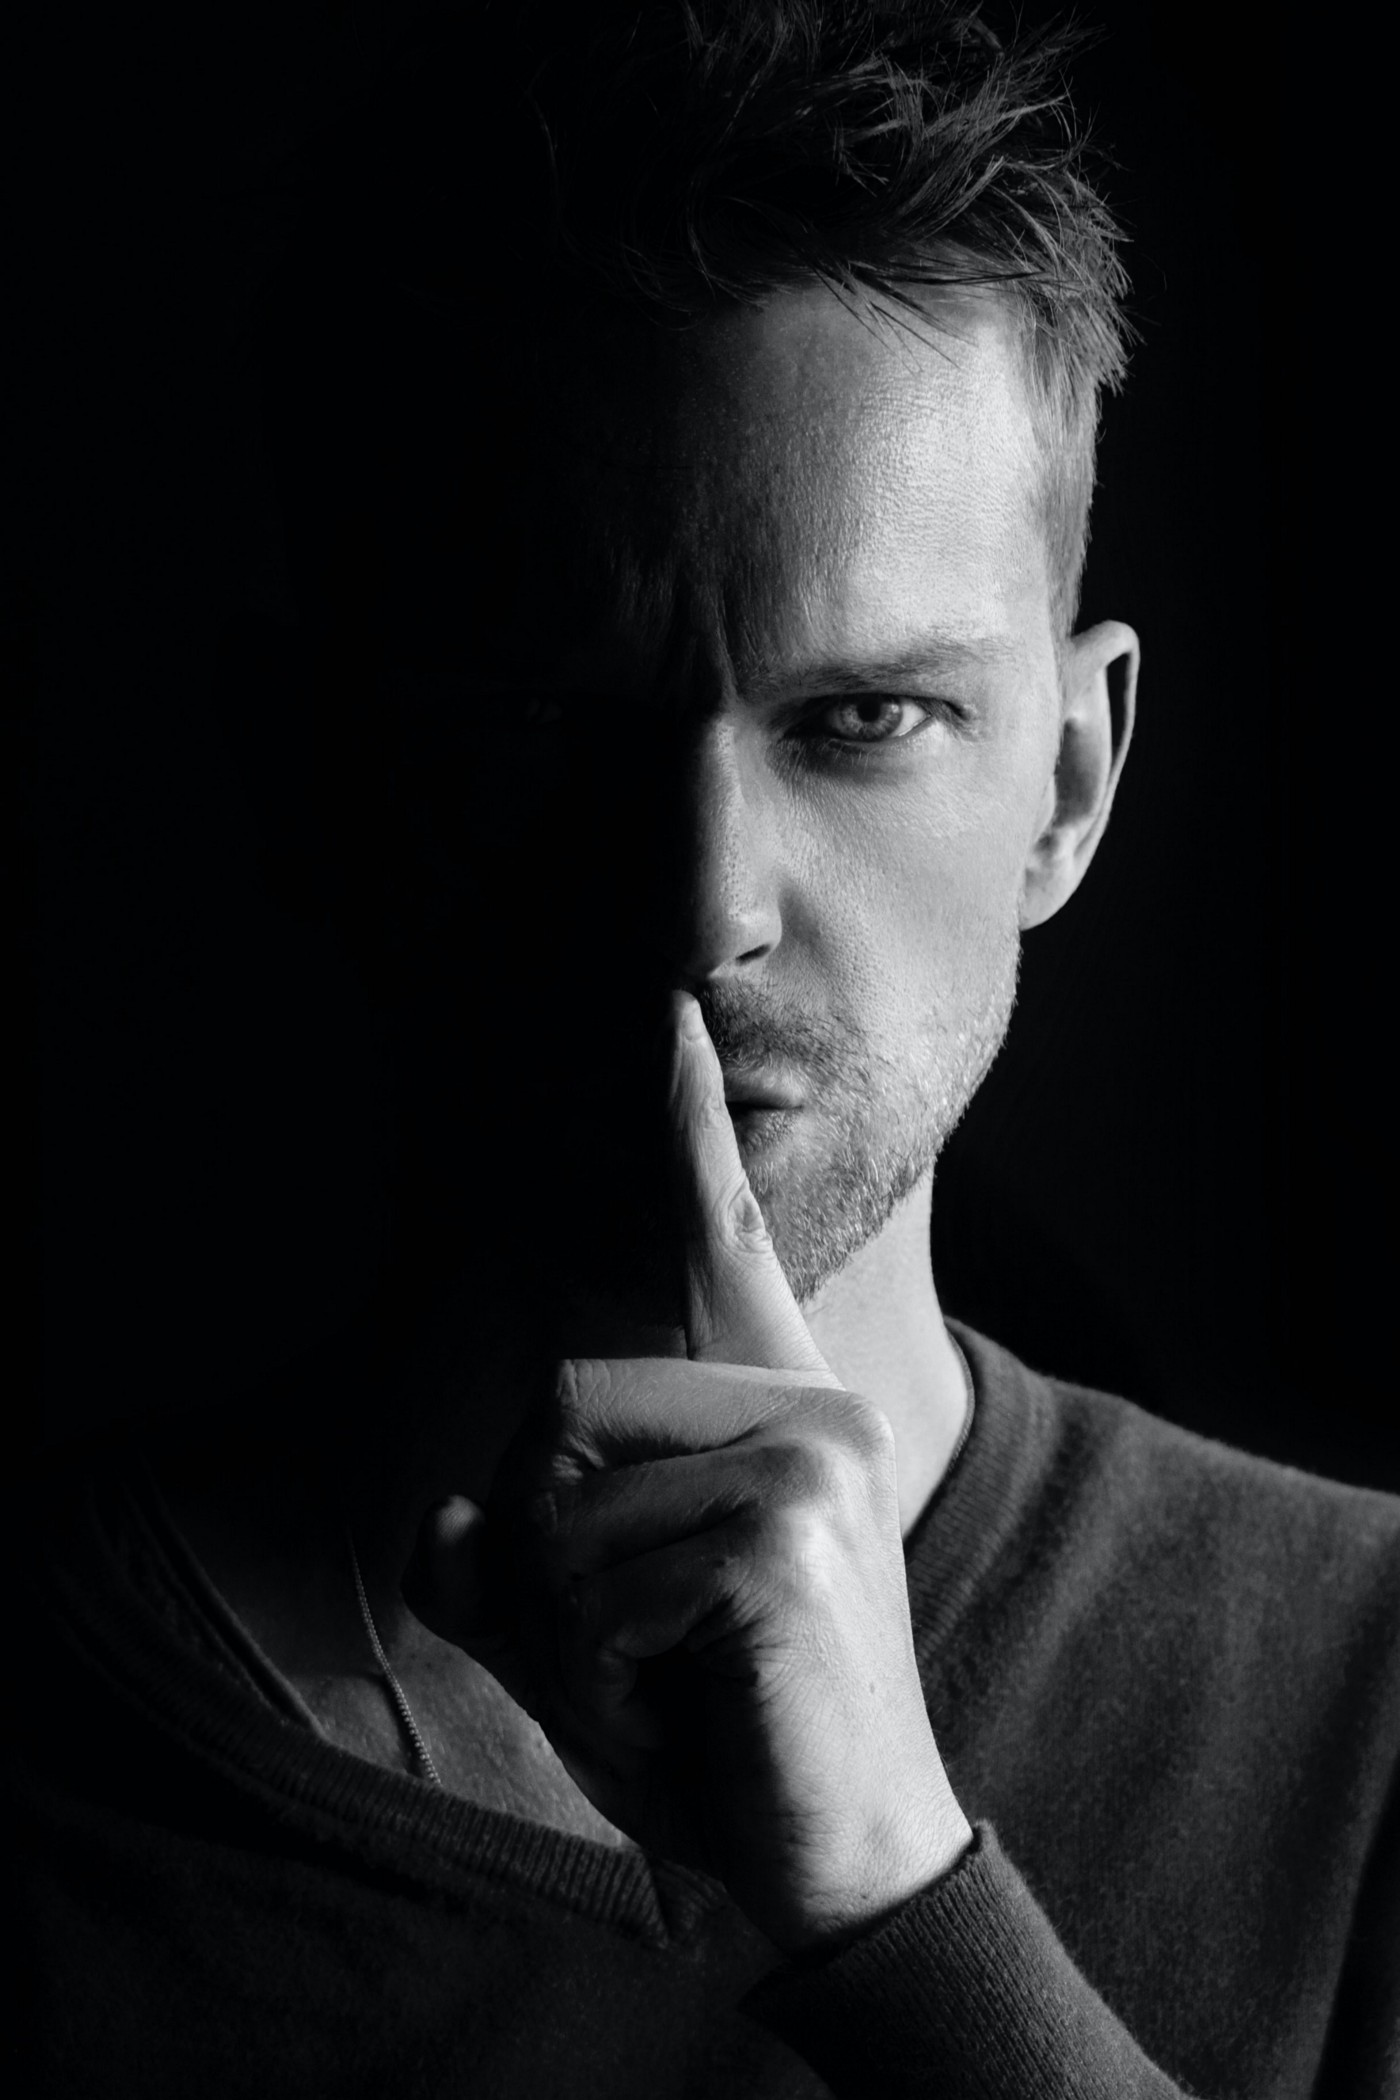 A dangerous-looking man in black and white trying to hush the viewer with a single finger.